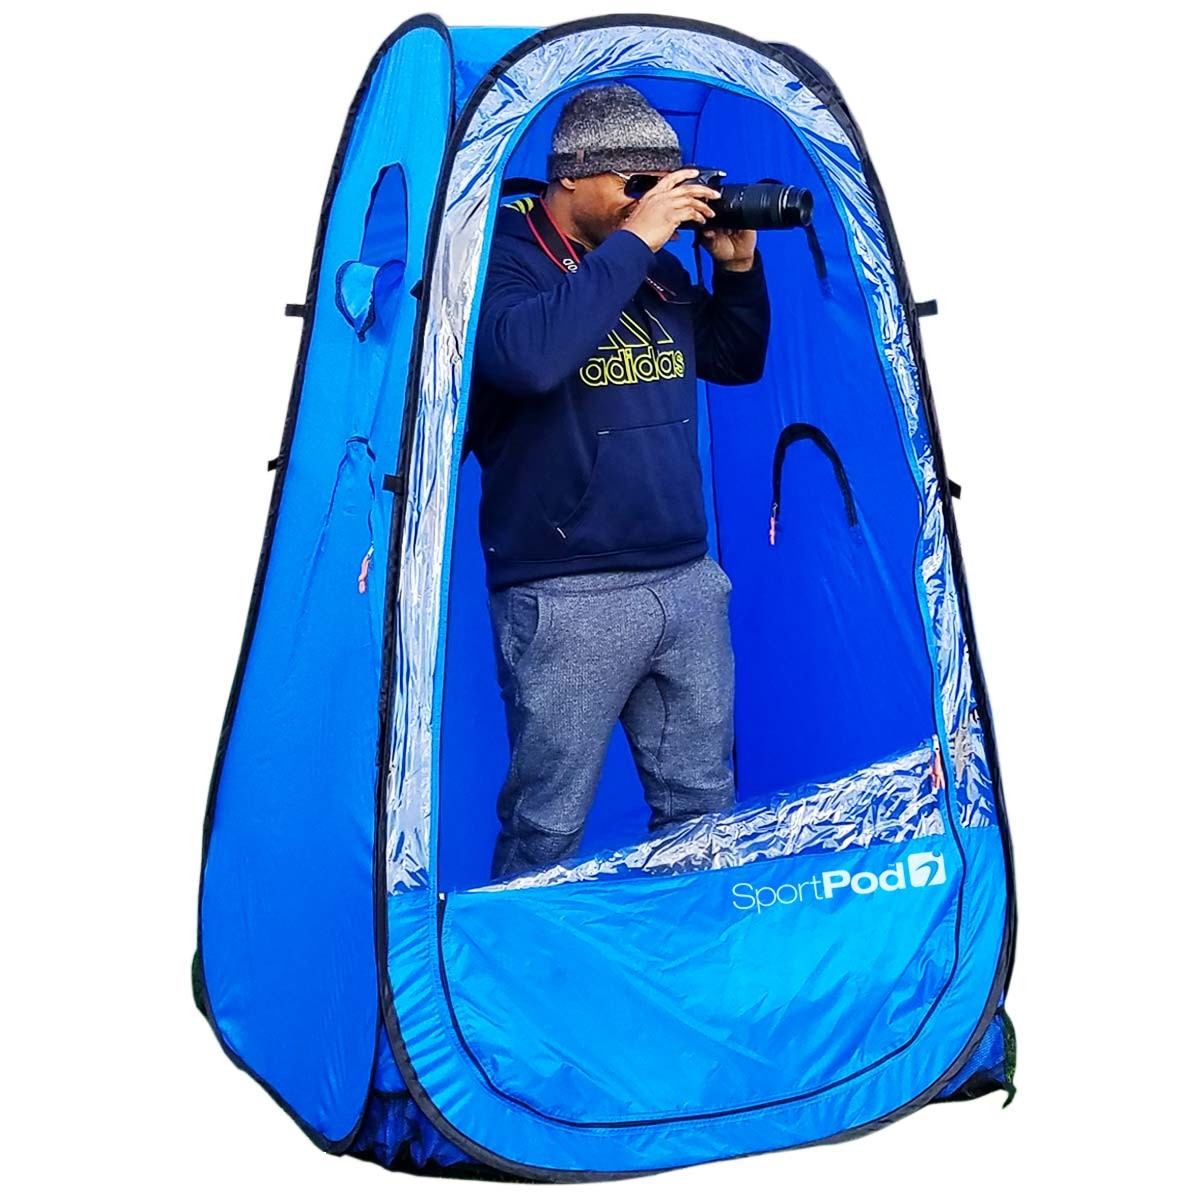 chair under cover teak shower chairs actionpod undercover all weather sportpod pop up tent